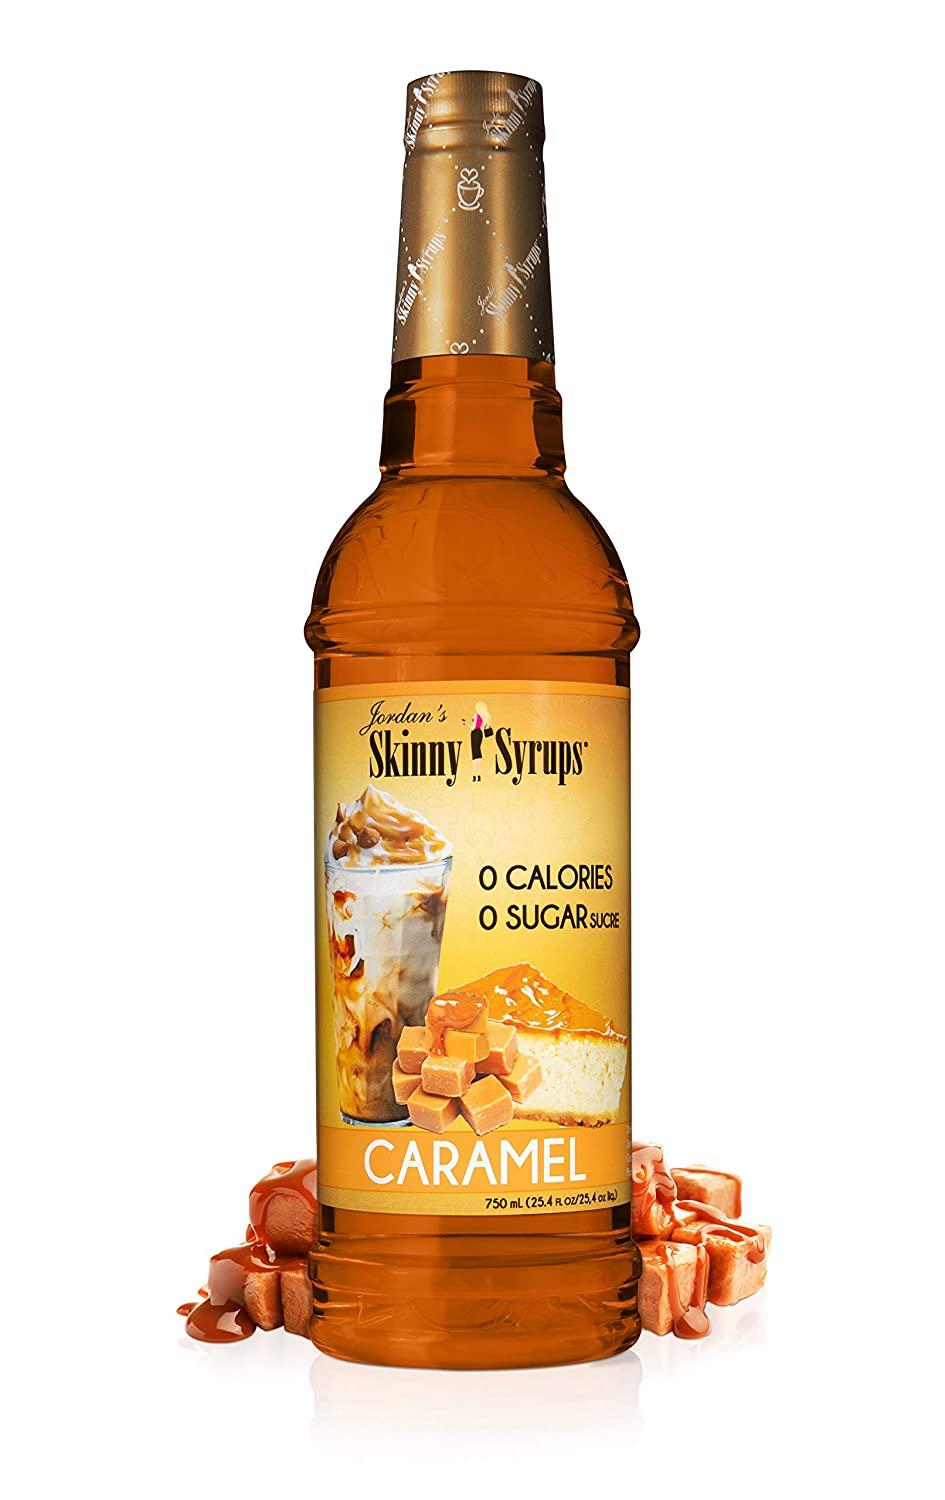 Skinny Syrups - 0 Calories - 0 sugar - 750ml